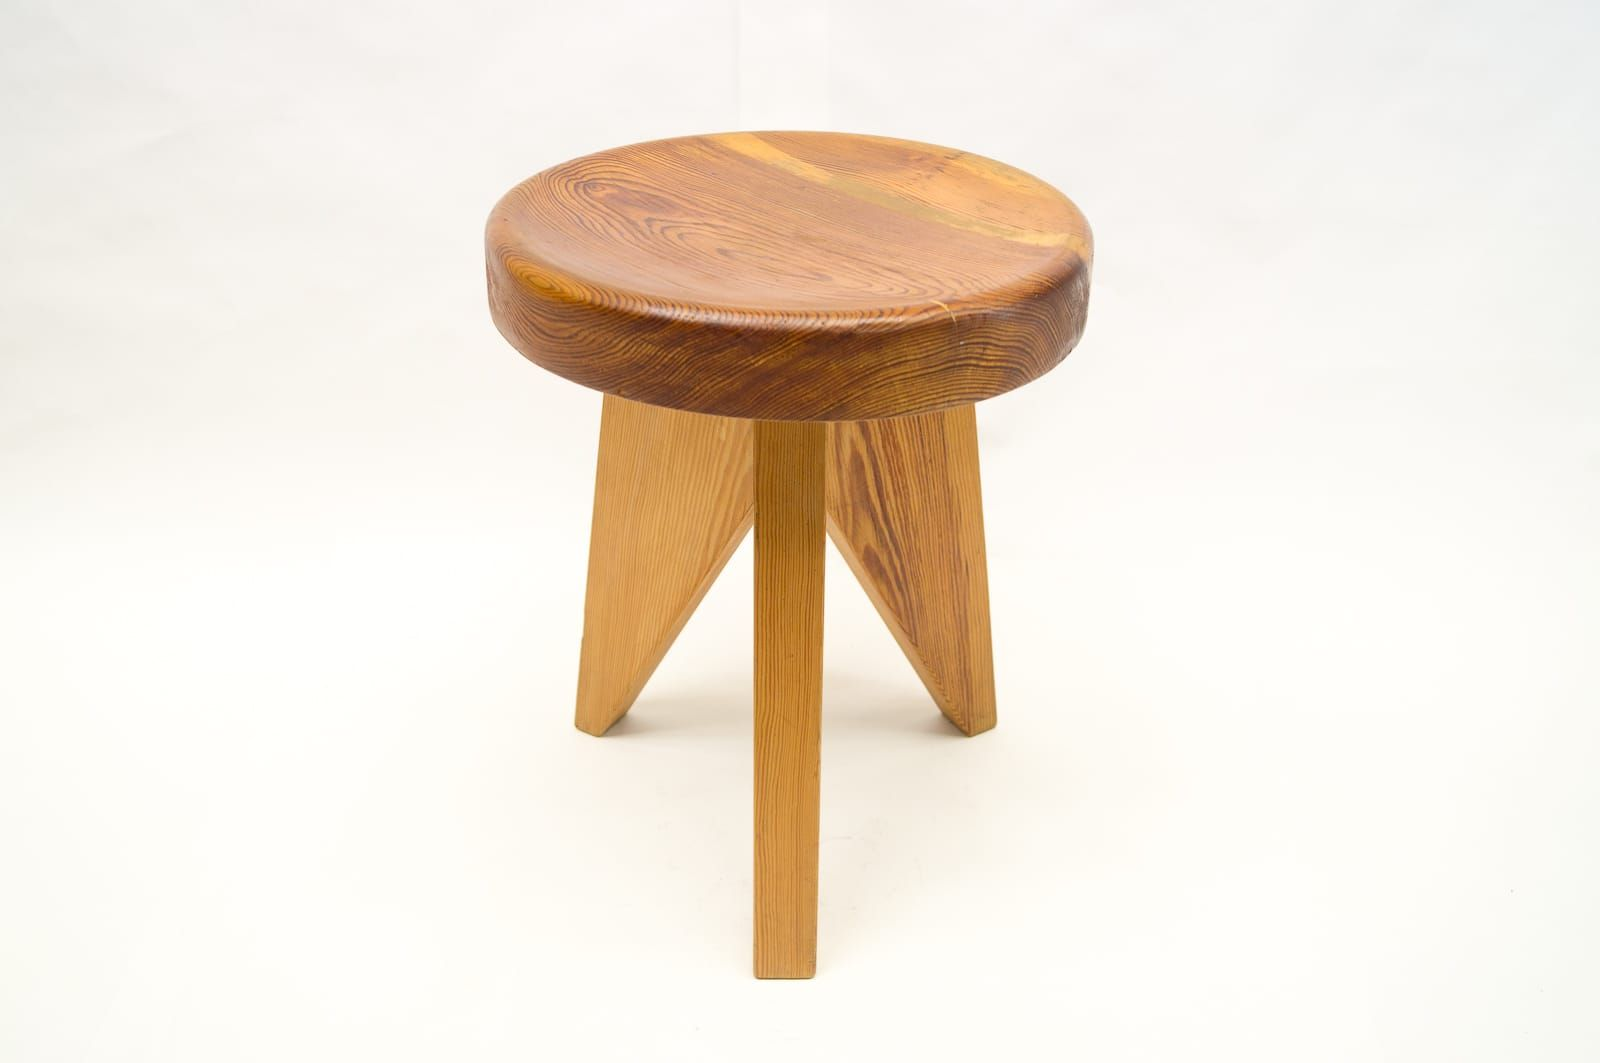 stools stool undulating wooden trends